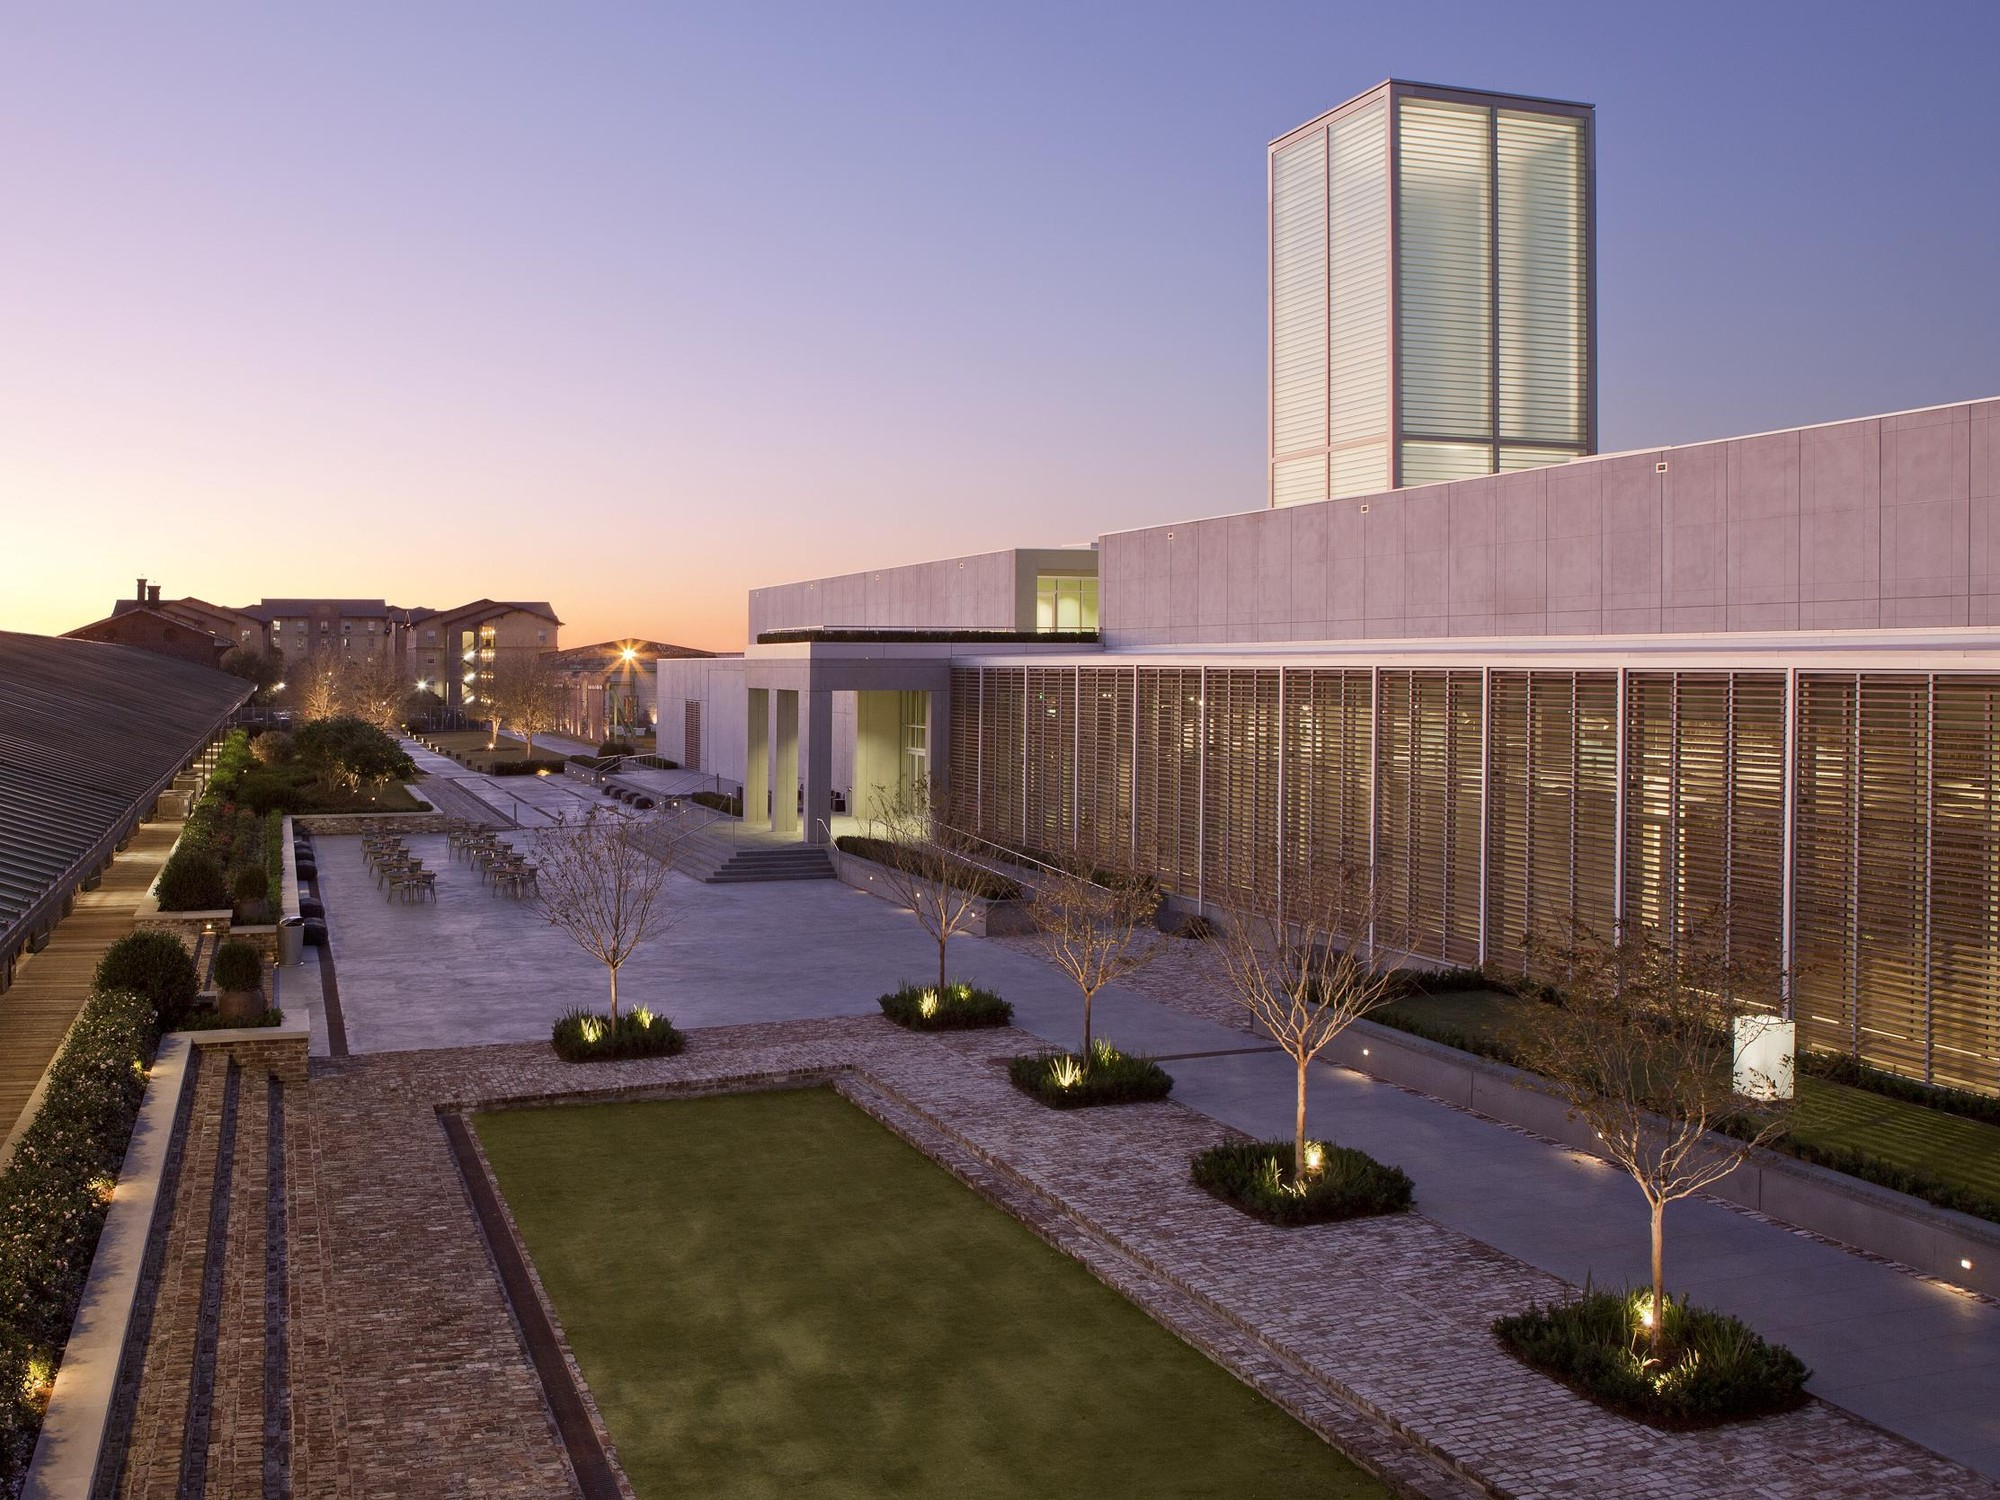 SCAD Museum of Art / Sottile & Sottile and Lord Aeck Sargent, in association with Dawson Architects, © Savannah College of Art and Design